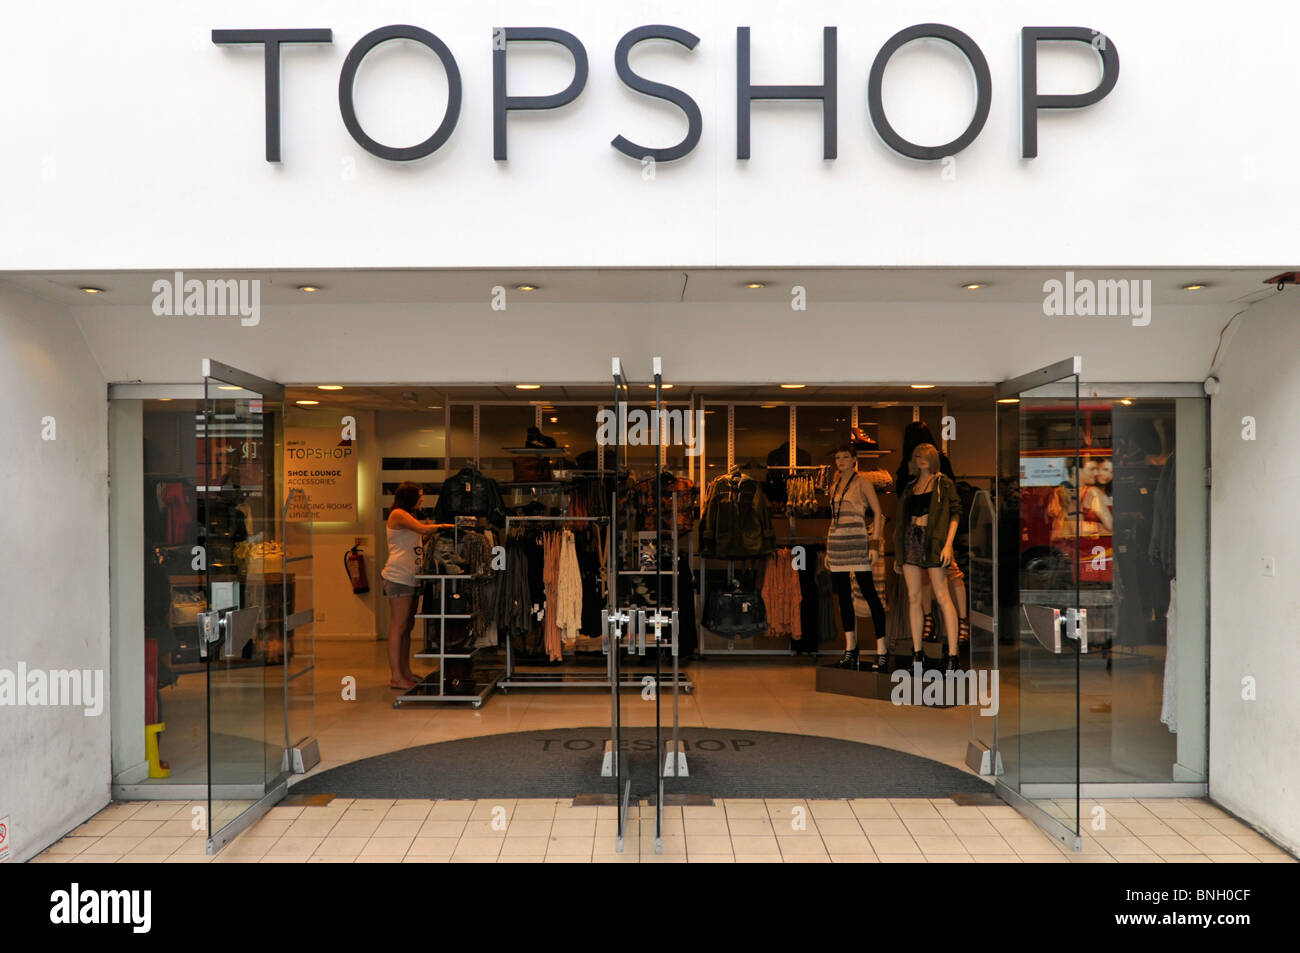 Topshop part of Arcadia business Group a British fashion retail clothing store front entrance doors & interior The Stock Photo